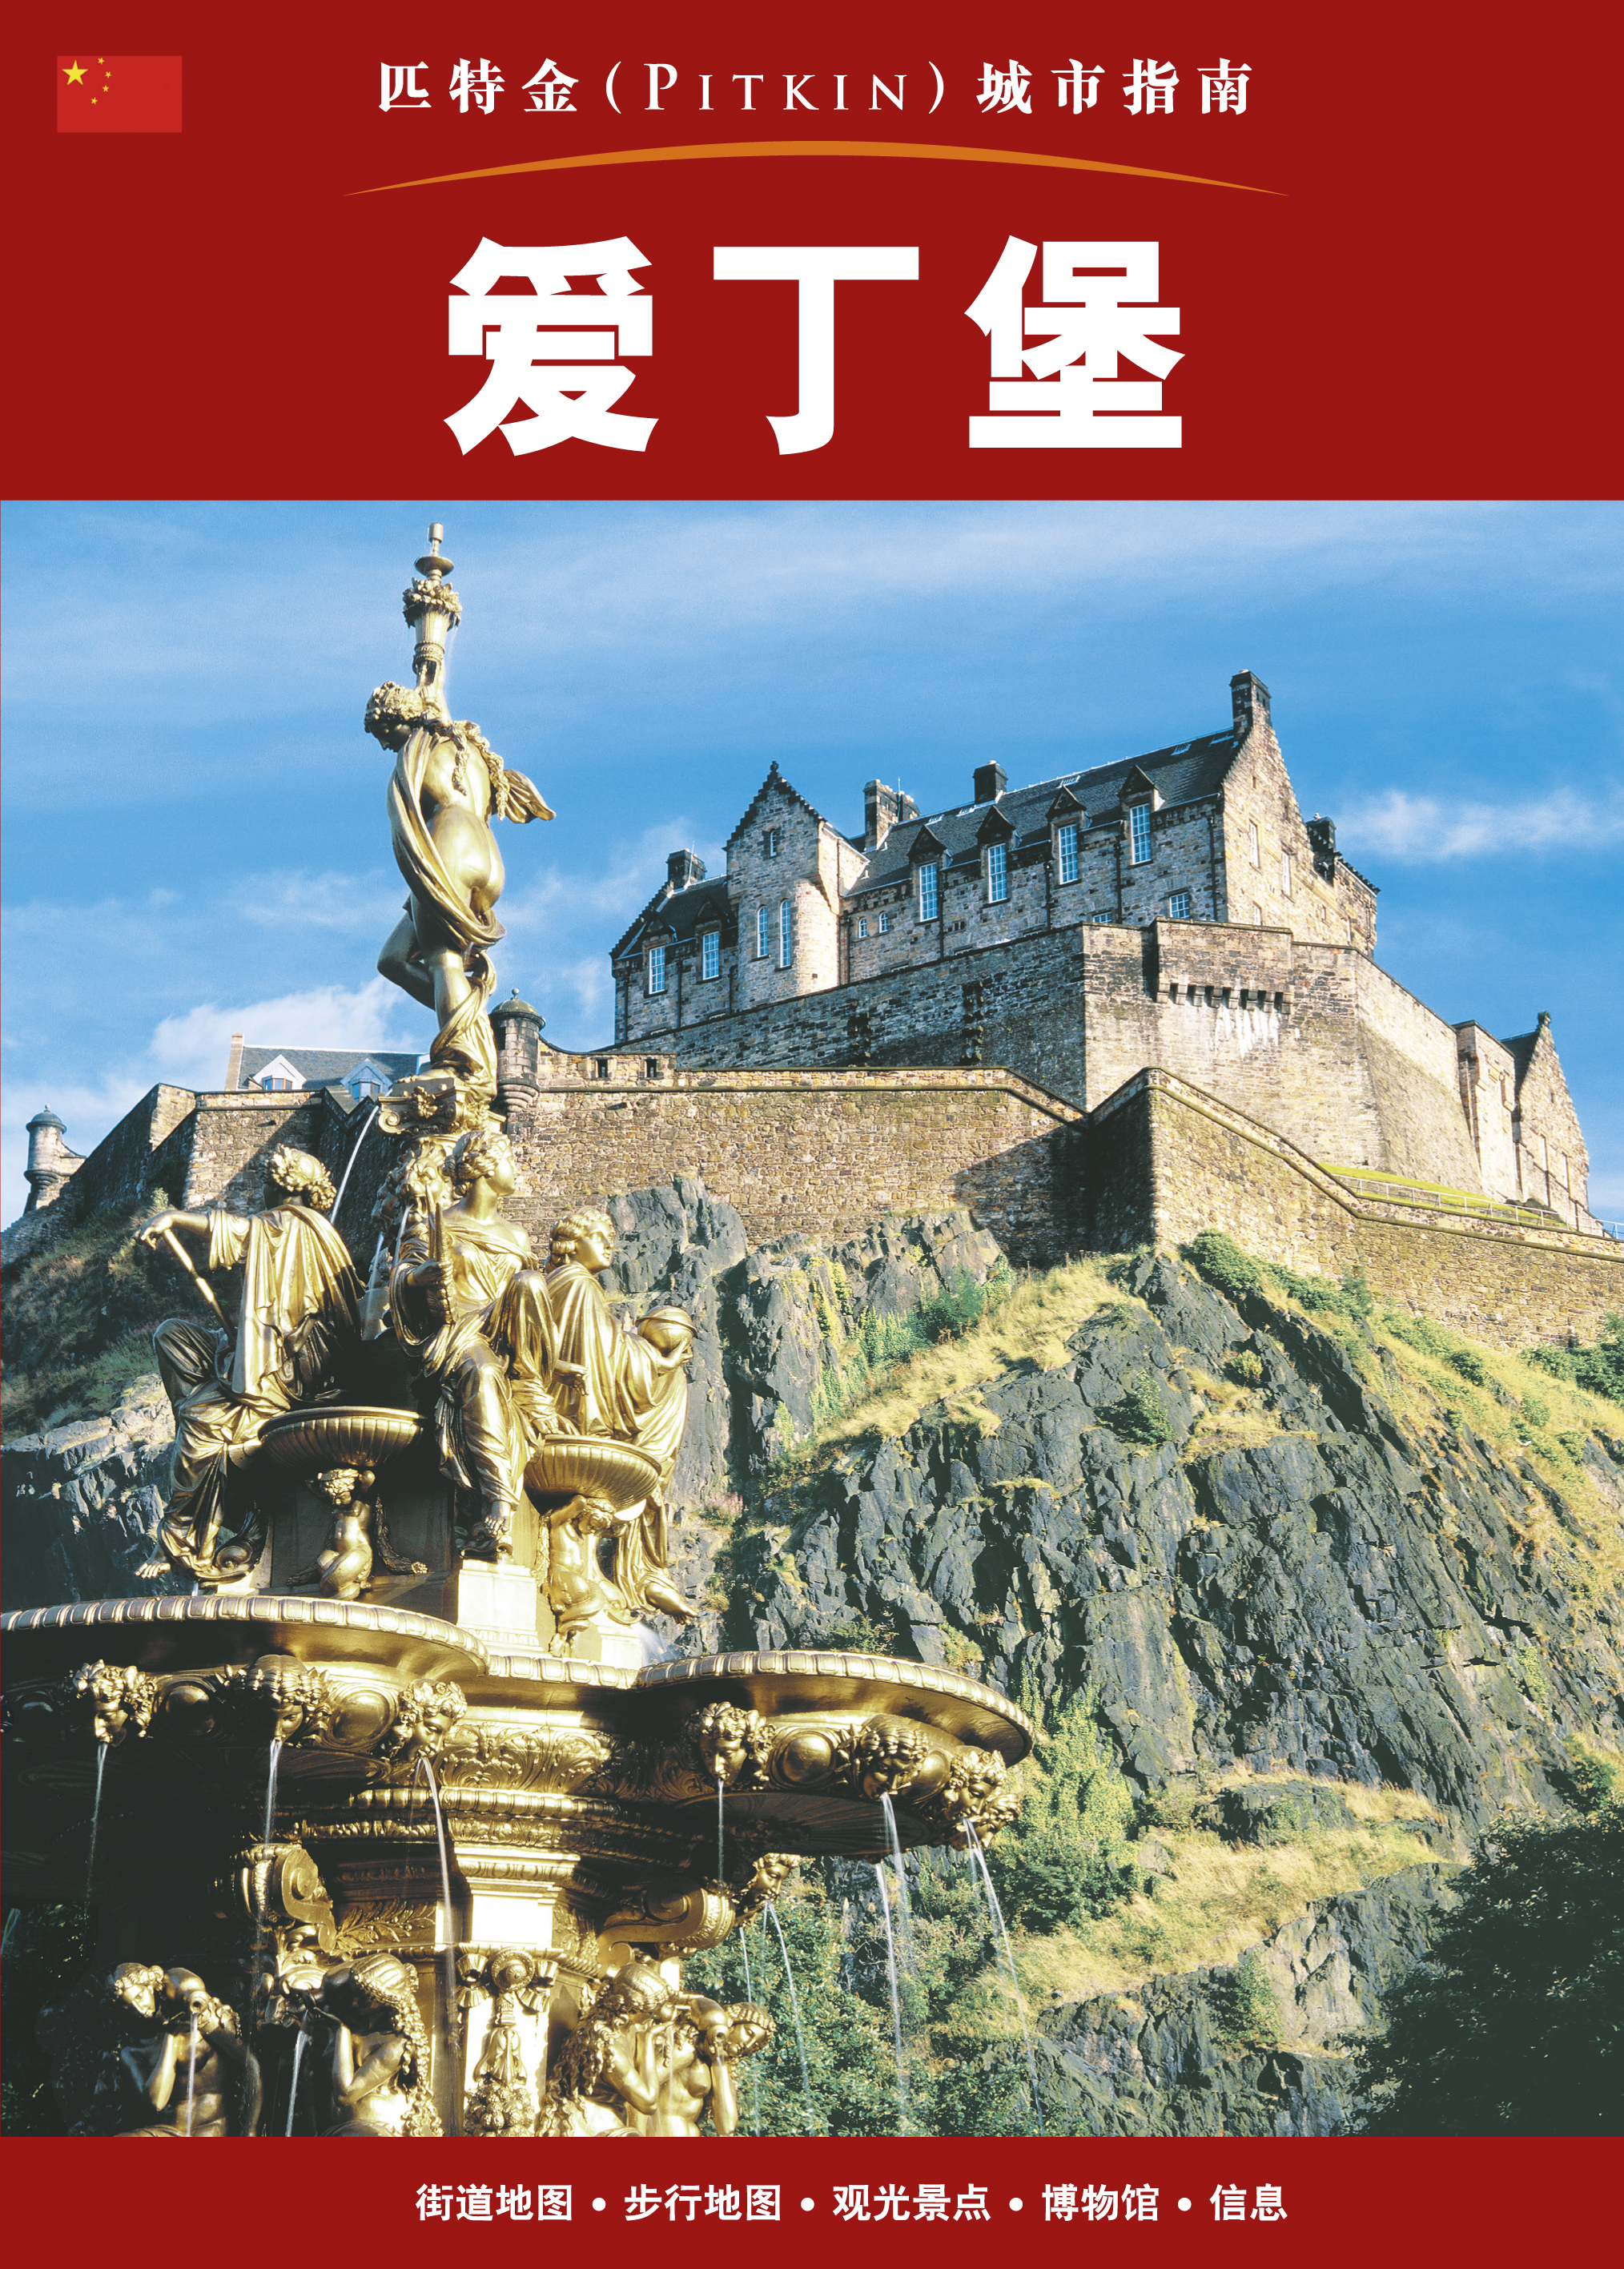 Edinburgh City Guide – Chinese